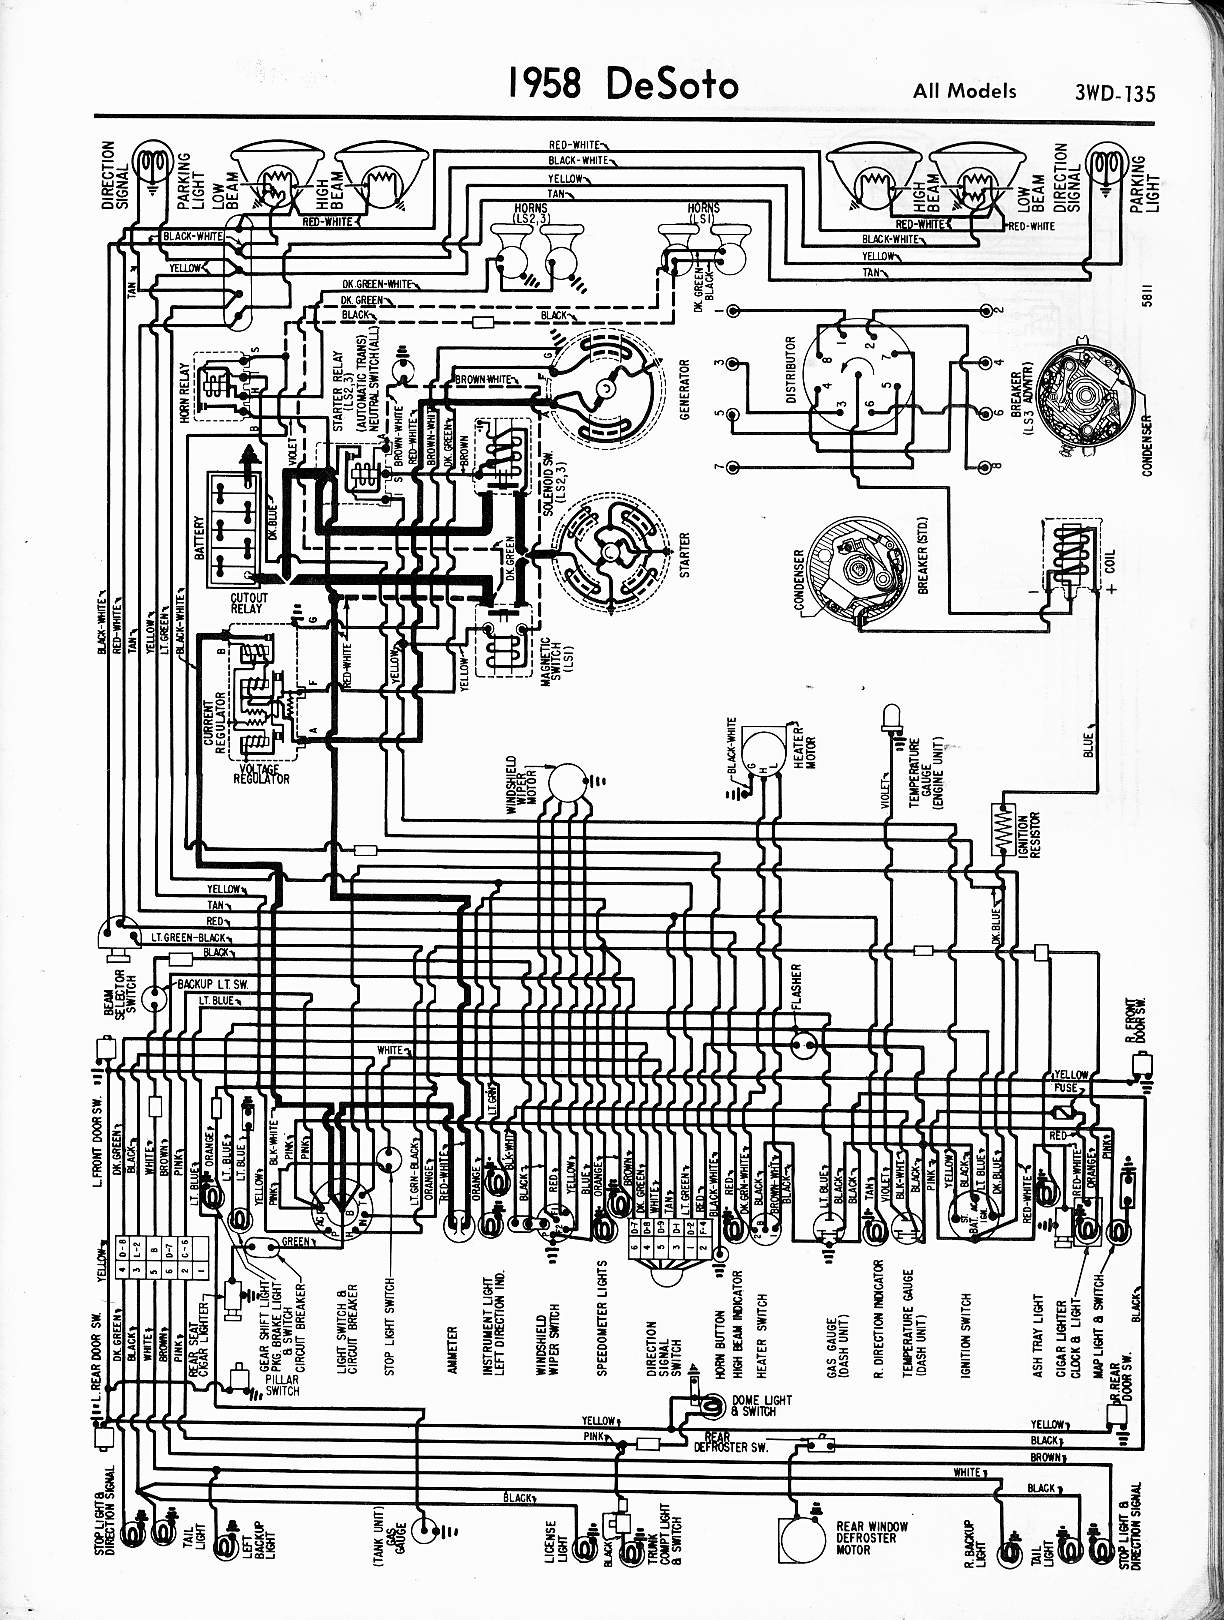 Voltmeter Gauge Wiring Diagram 1957 Chevy Trusted Ammeter 1952 Chevrolet Desoto Gas All Kind Of Diagrams U2022